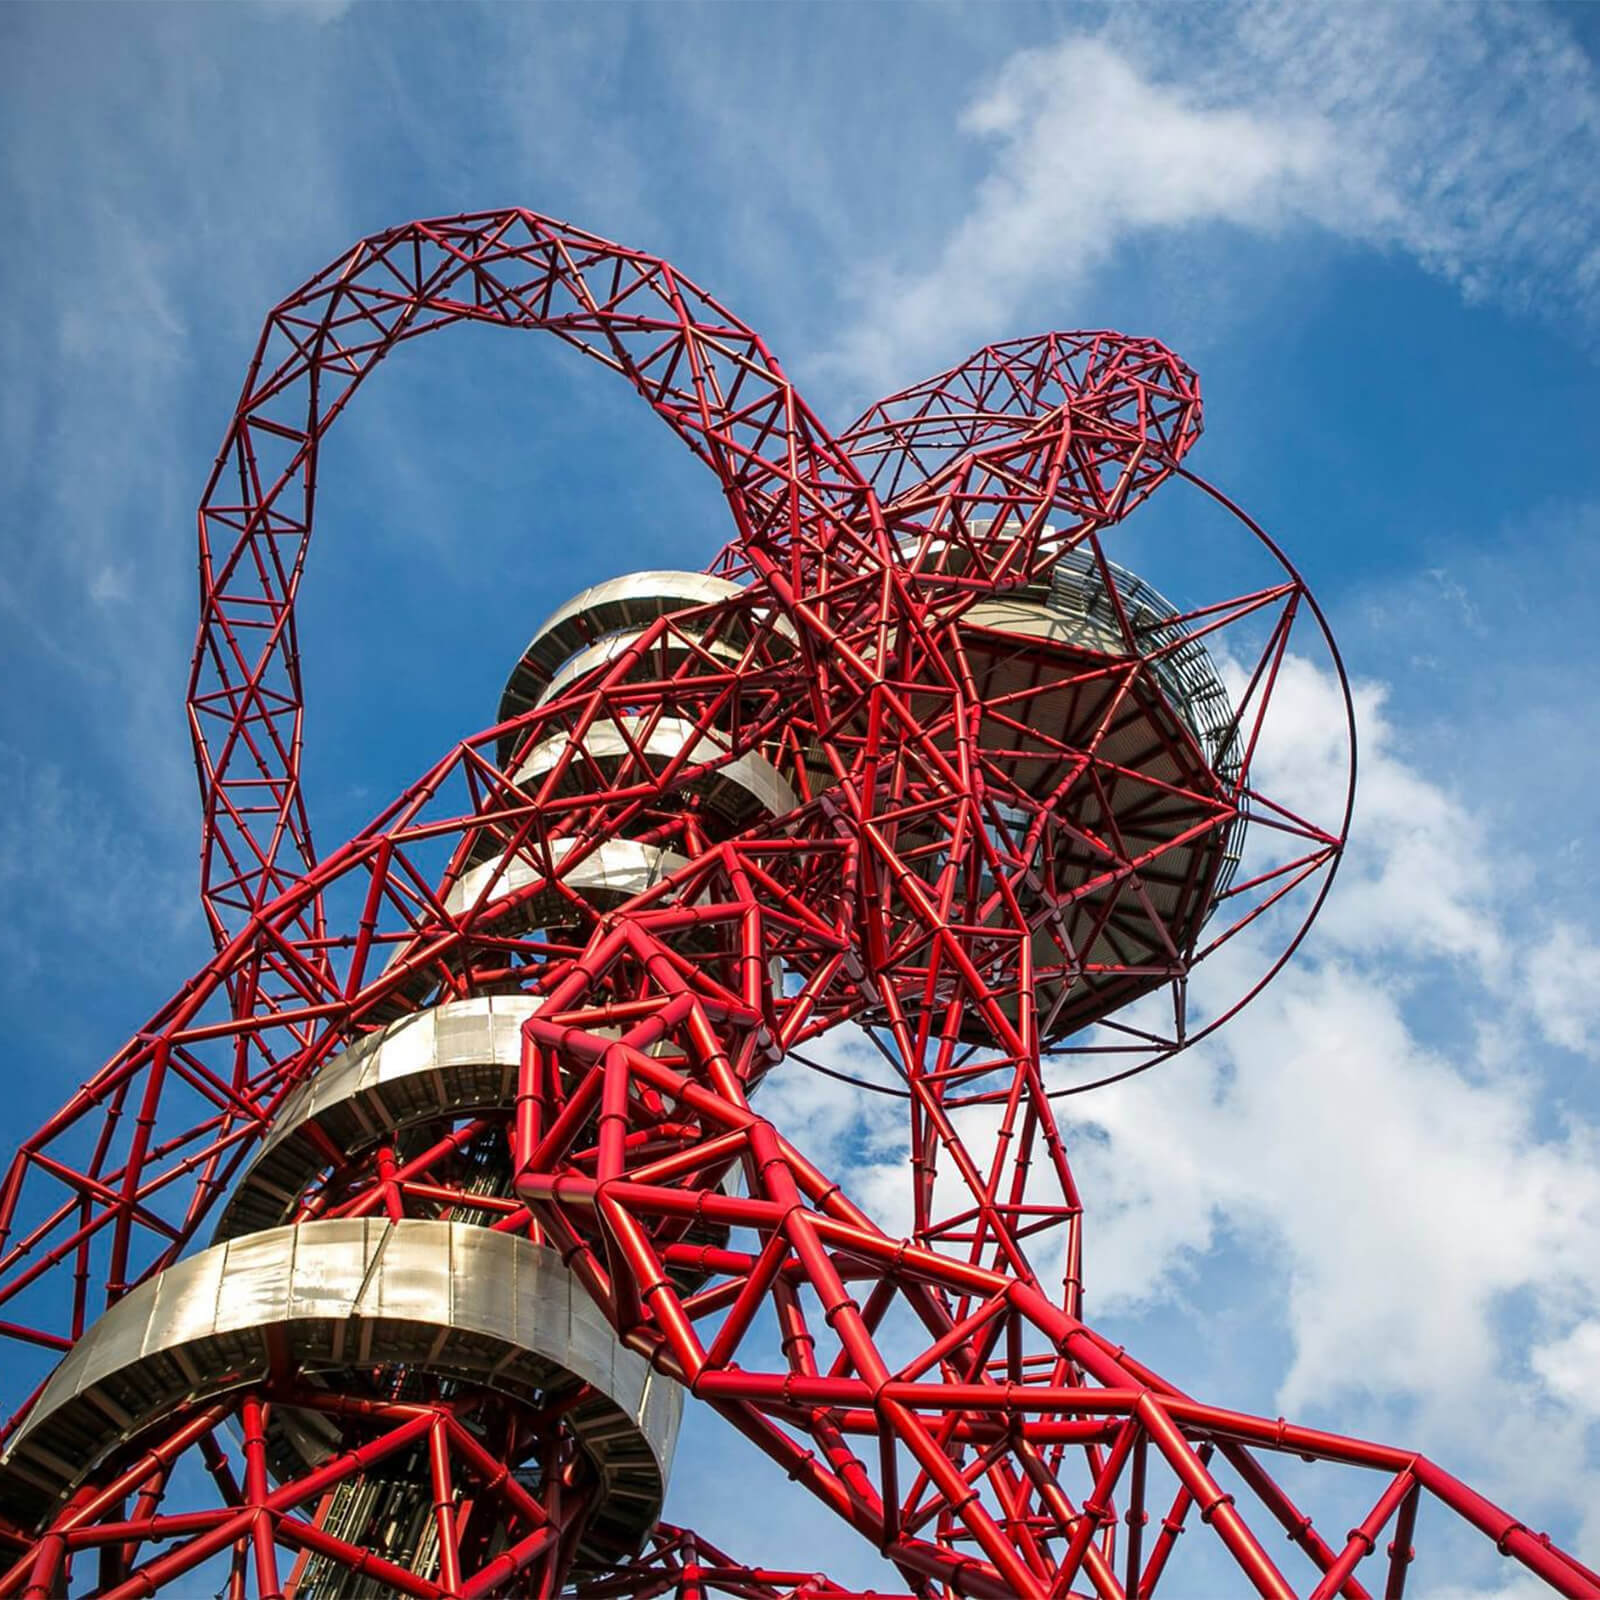 Arcelormittal Orbit and Afternoon Tea for Two